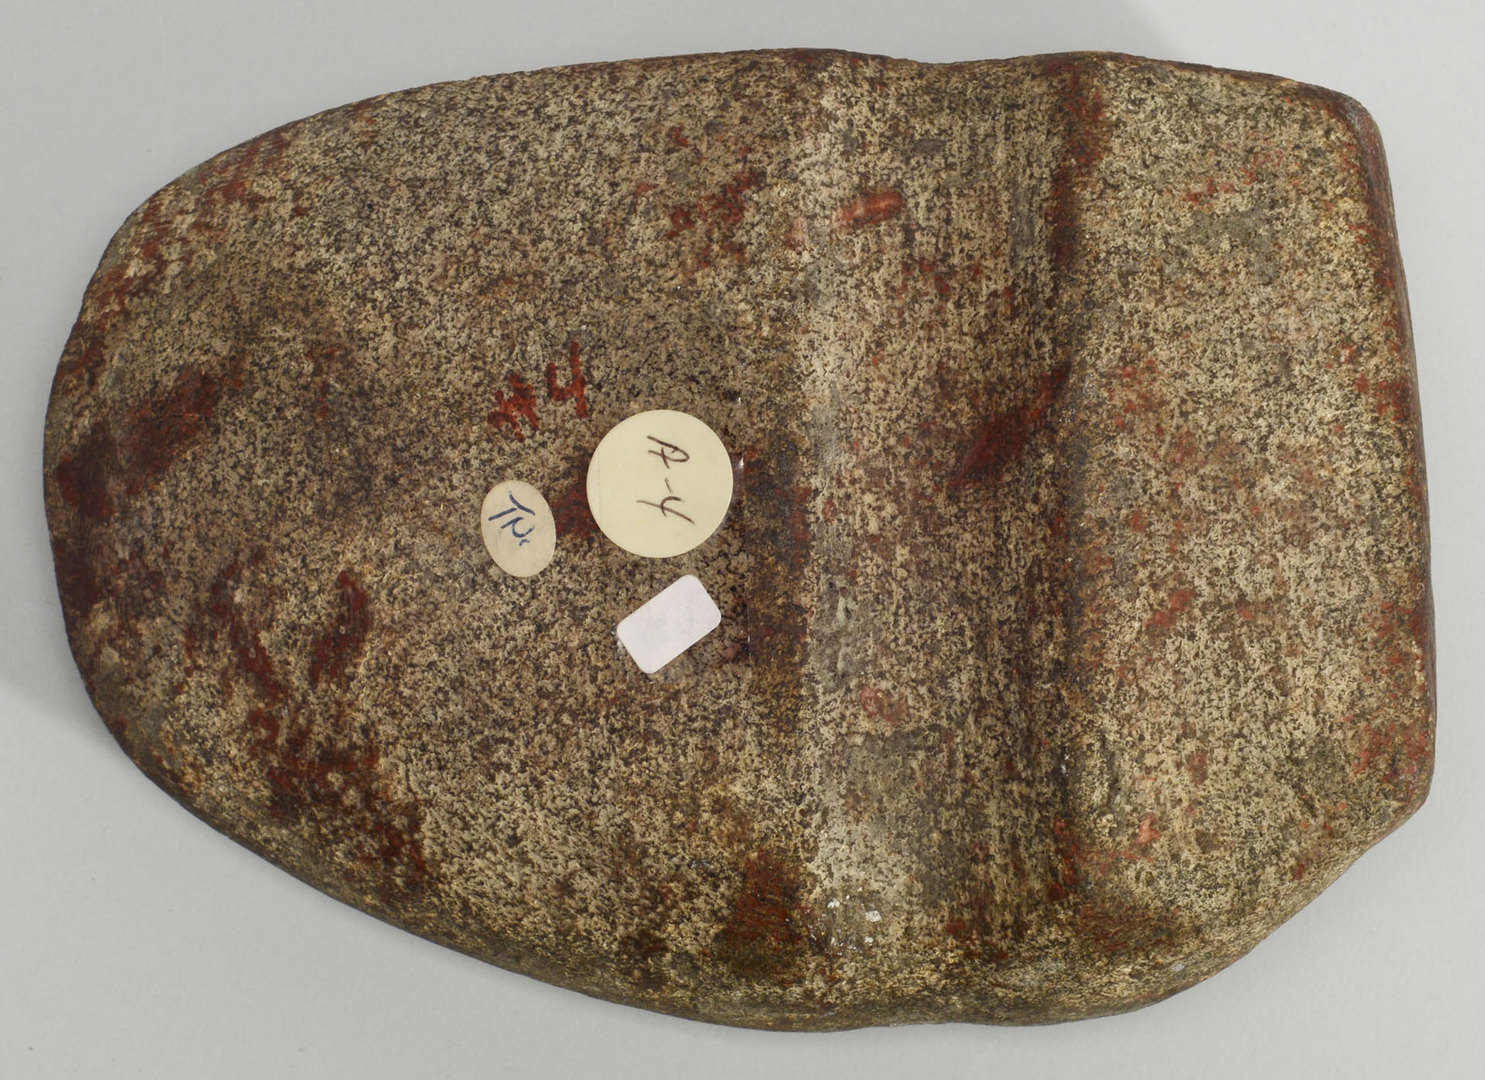 Lot 403: Three Quarter 3/4 Grooved Granite Axe, Tennessee